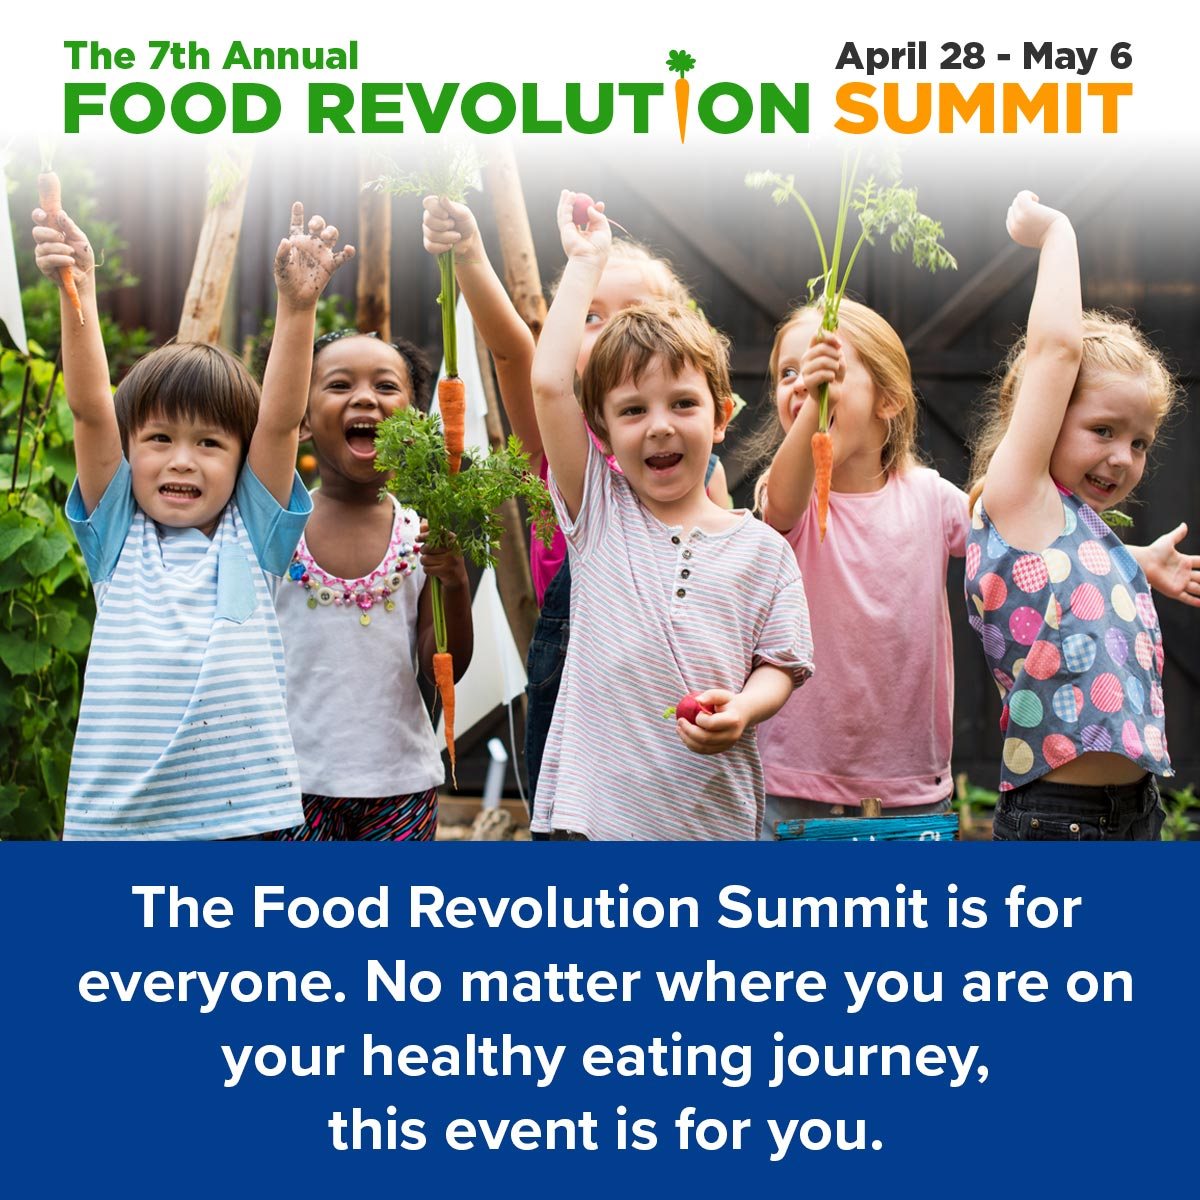 The Food Revolution Summit is for everyone. No matter where you are on your healthy eating journey, this event is for you.